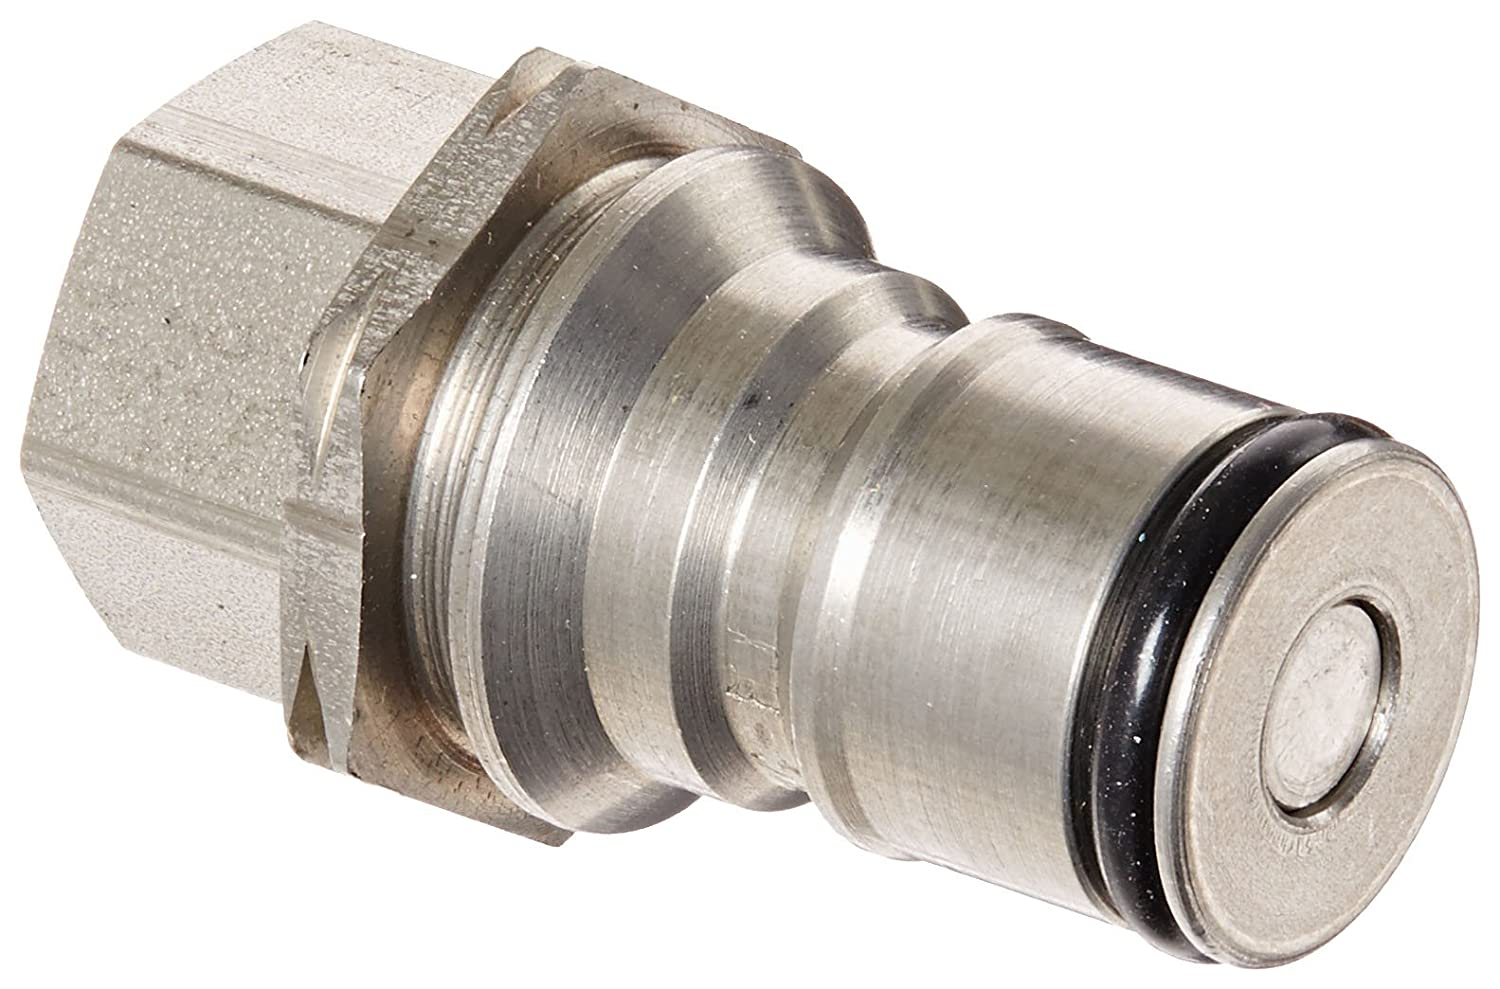 Eaton Hansen 2KGF720 Pneumatic Fitting Gas Connection 7//16-20 FT Flare 7//16-20 FT Flare